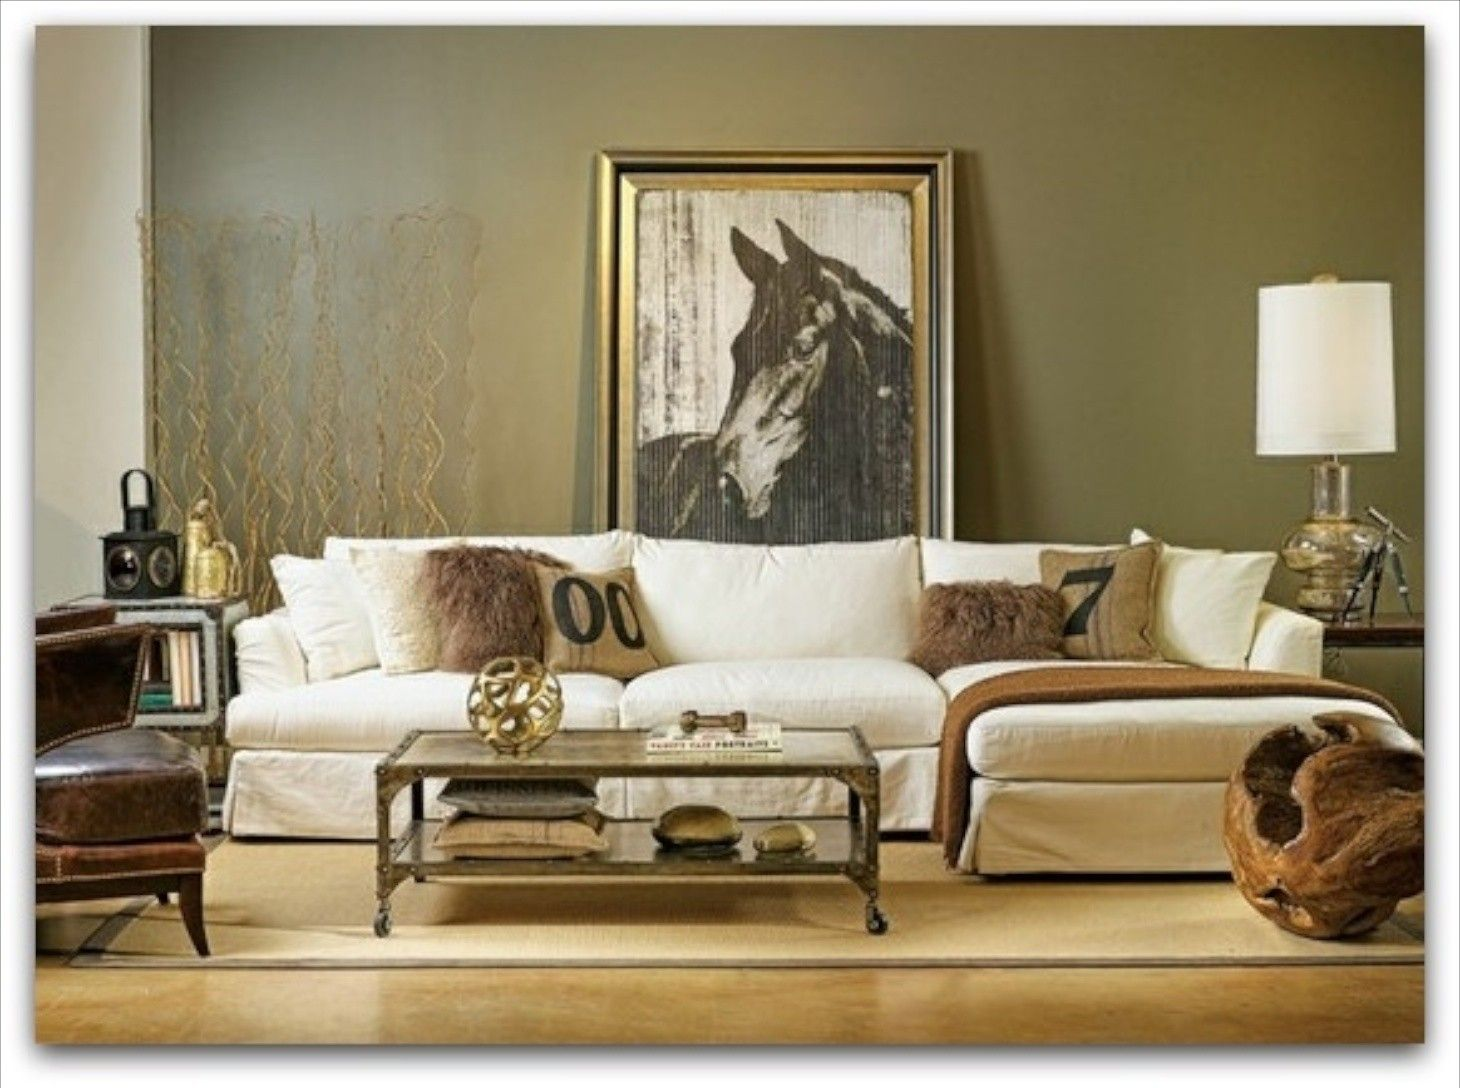 Equestrian Inspired Decor Home Interior Exterior Home Decor